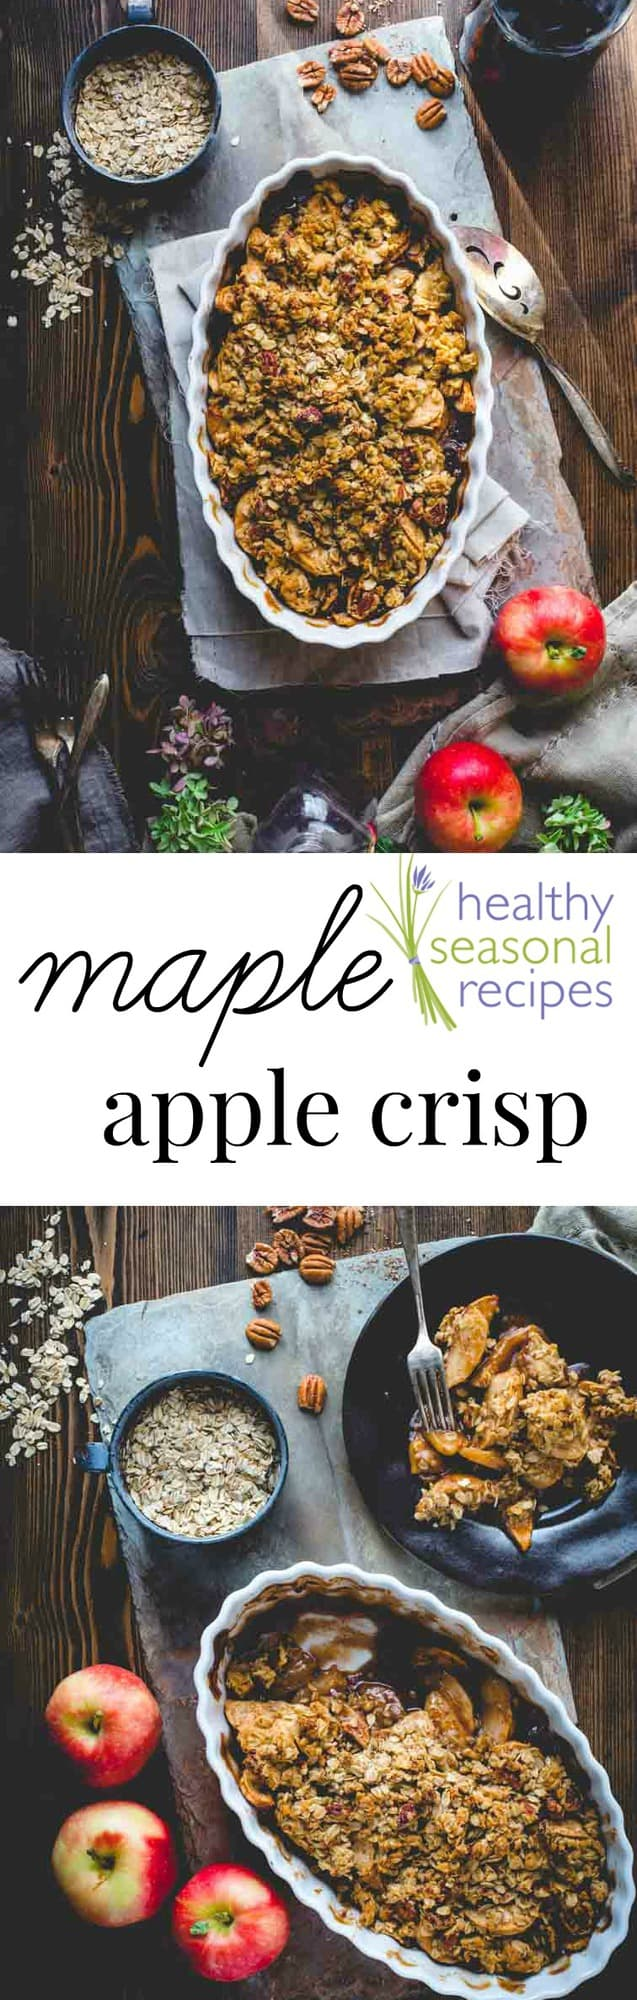 Healthy Maple Apple Crisp This maple sweetened apple crisp is the perfect dessert to bake this Fall. It's made with a variety of apples to amp up the juicy flavor and then topped with pecans and rolled oats to really take it to the next level! #apples #applecrisp #maple #dessert #healthy